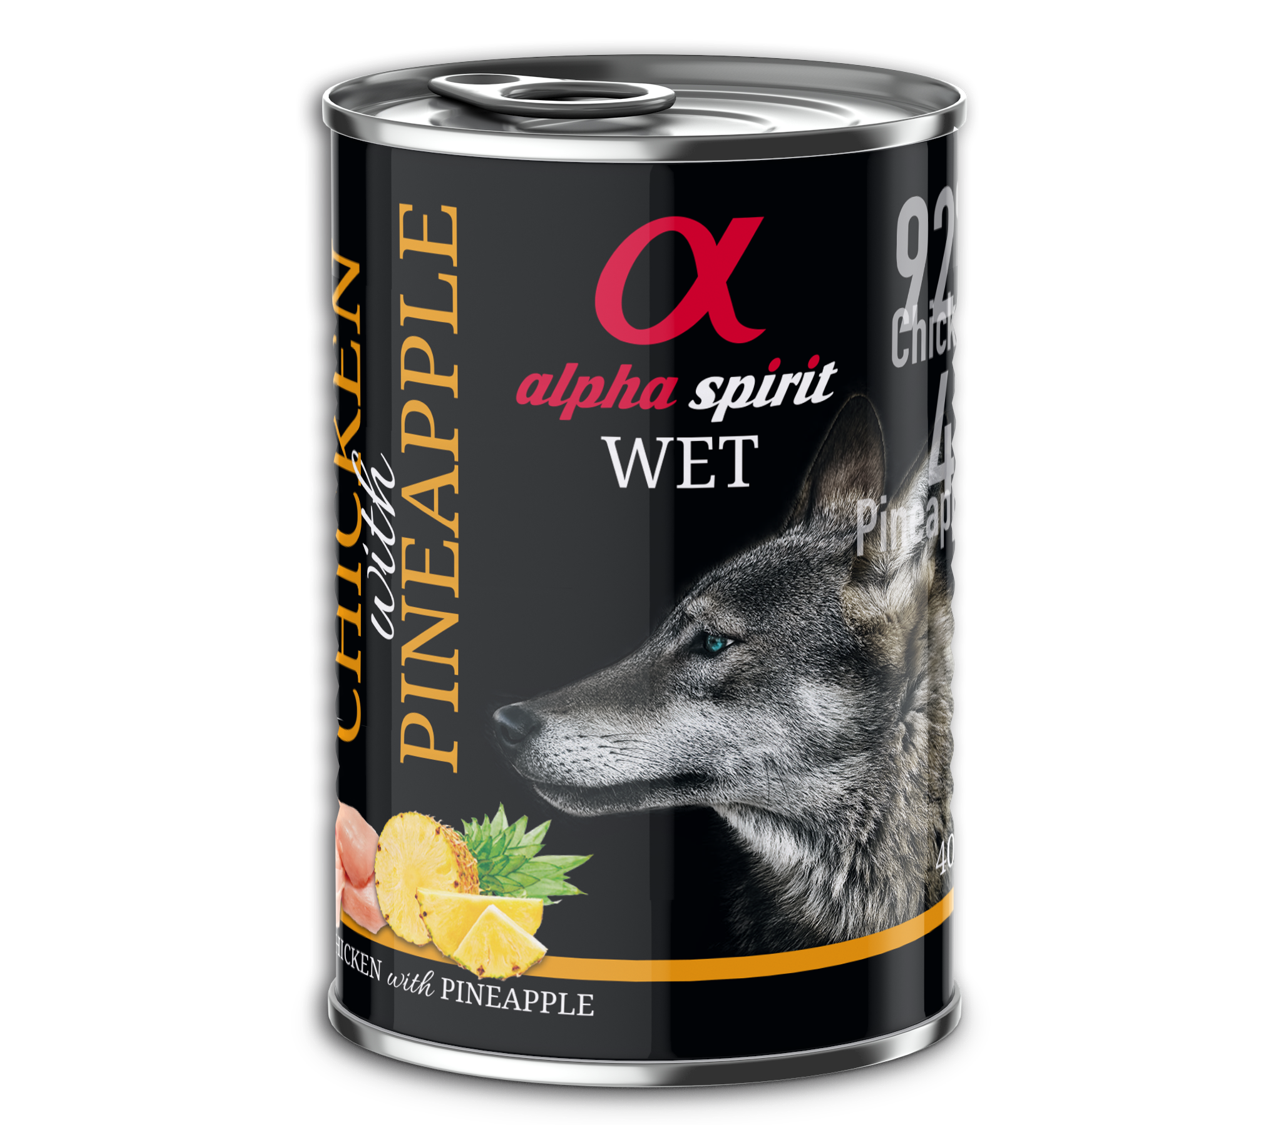 CHICKEN WITH PINEAPPLE WET FOOD